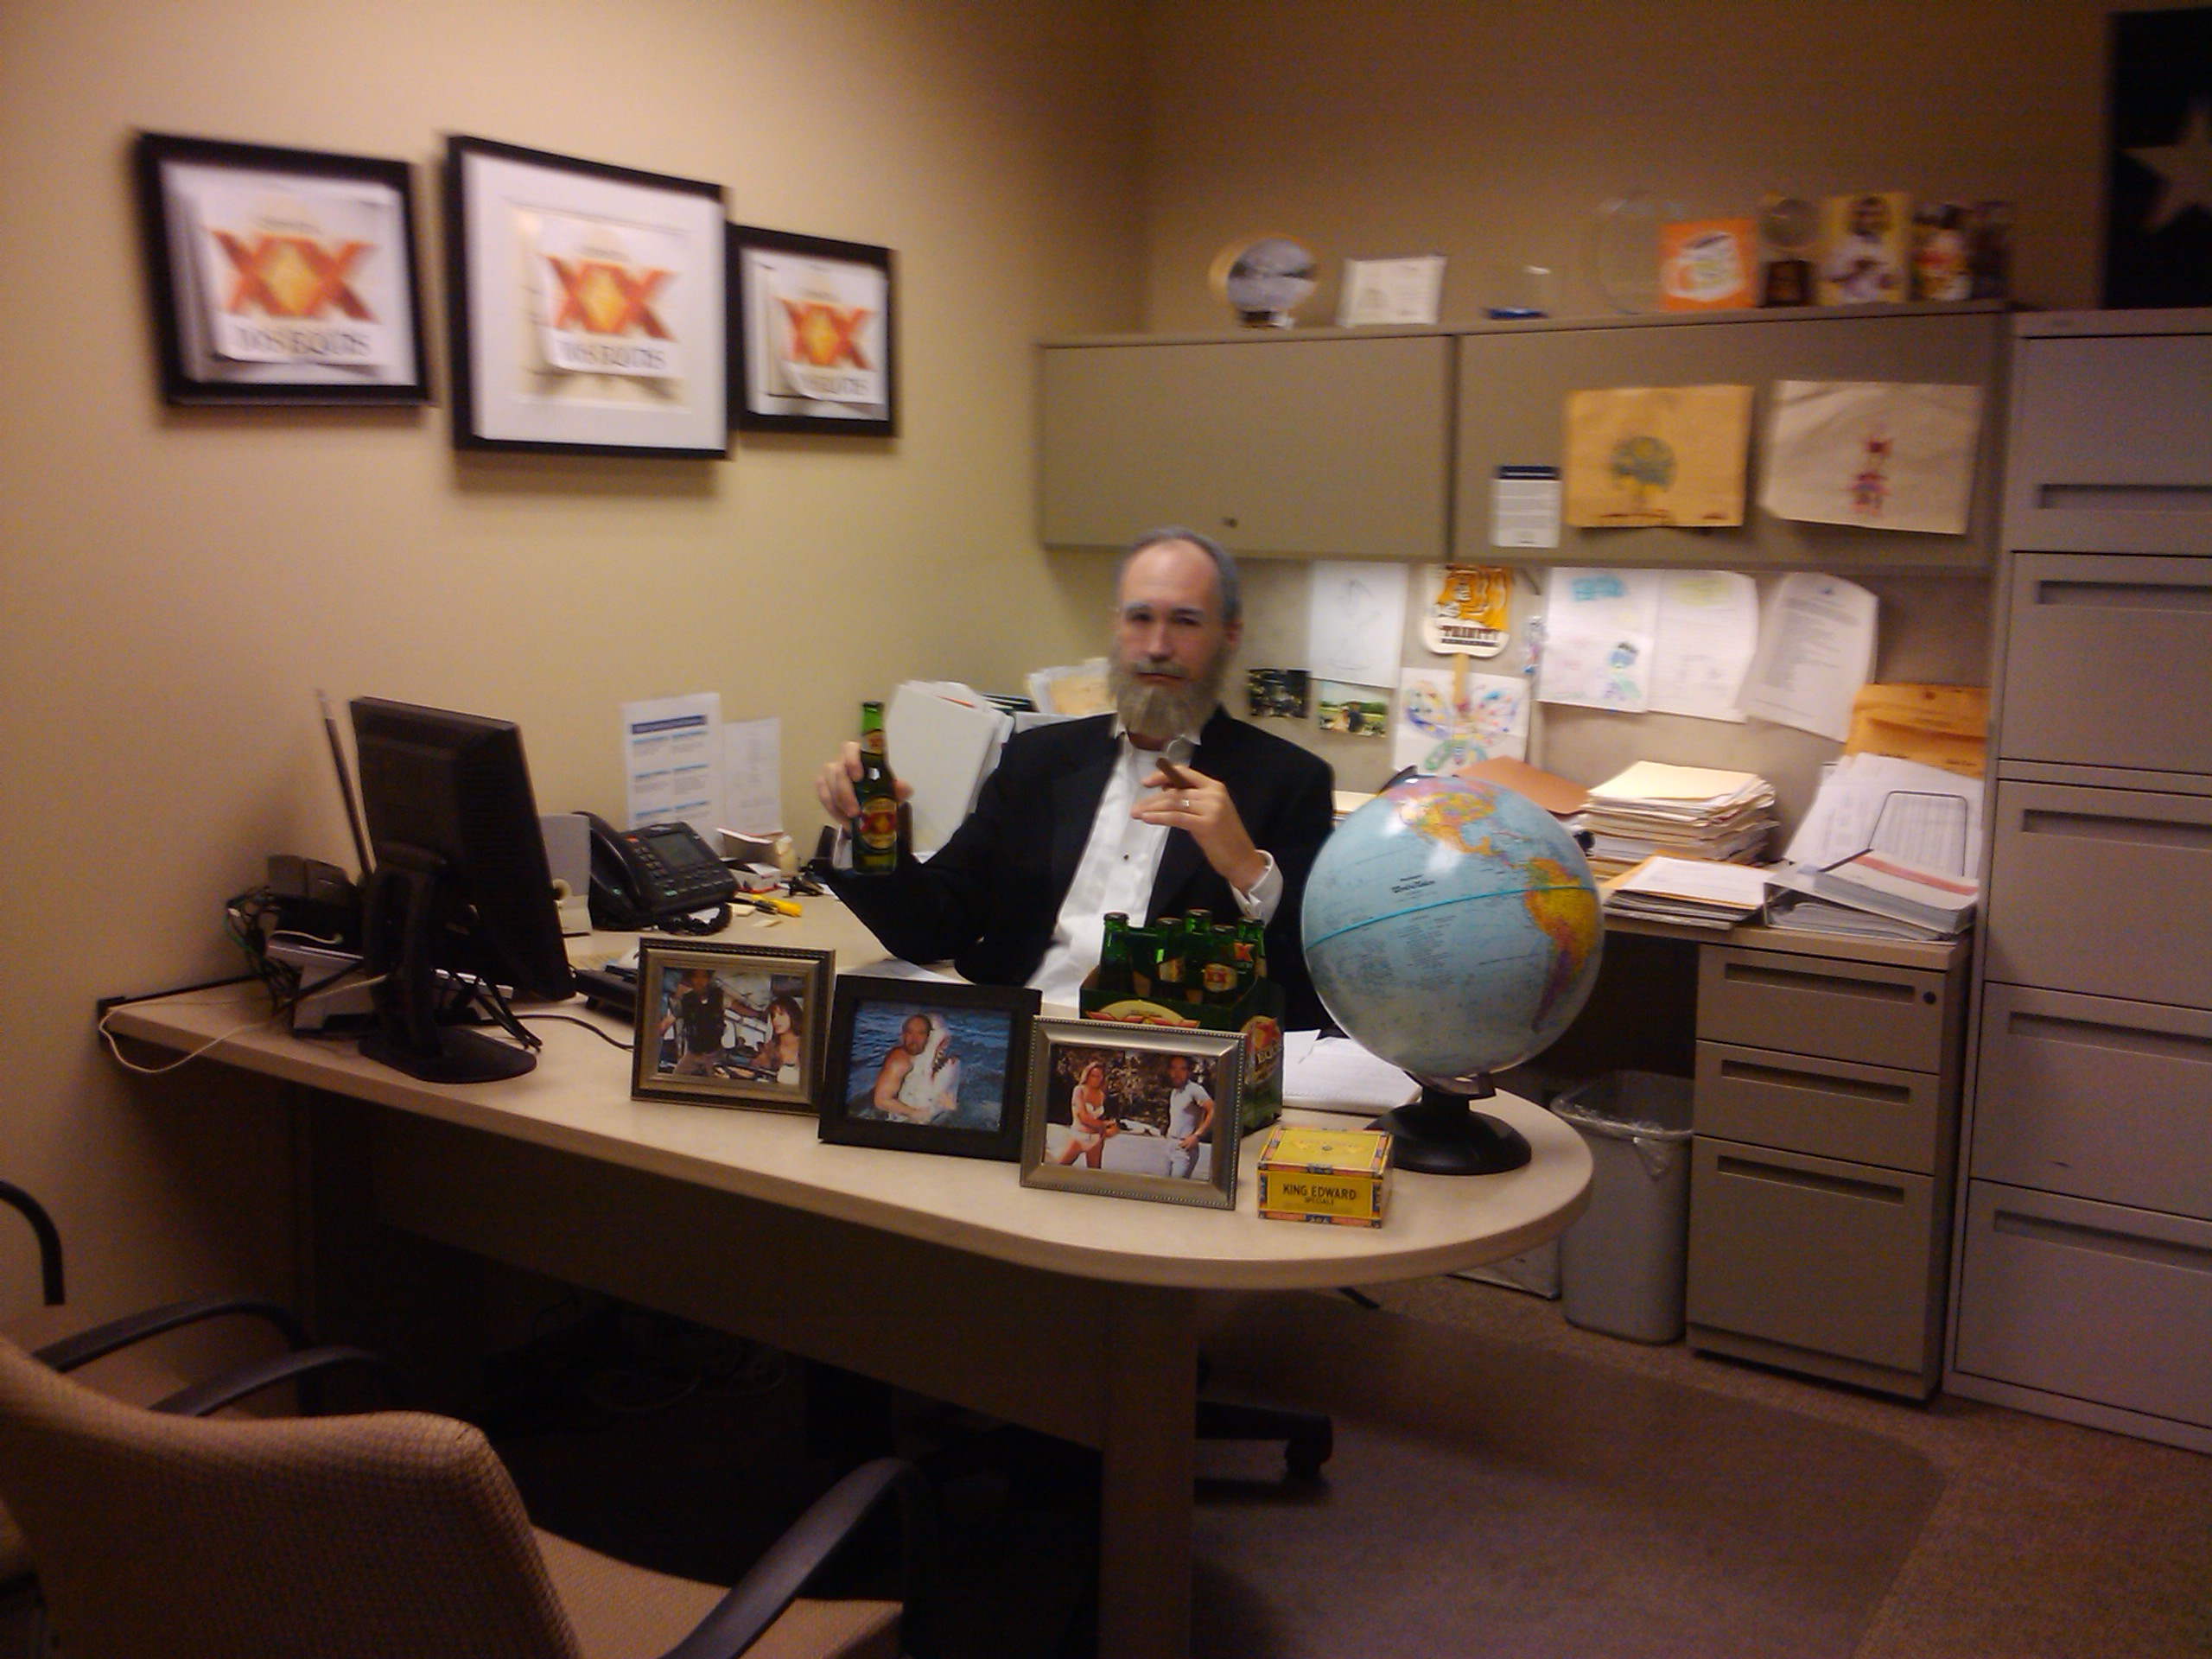 The Most Interesting Man in the World costumes